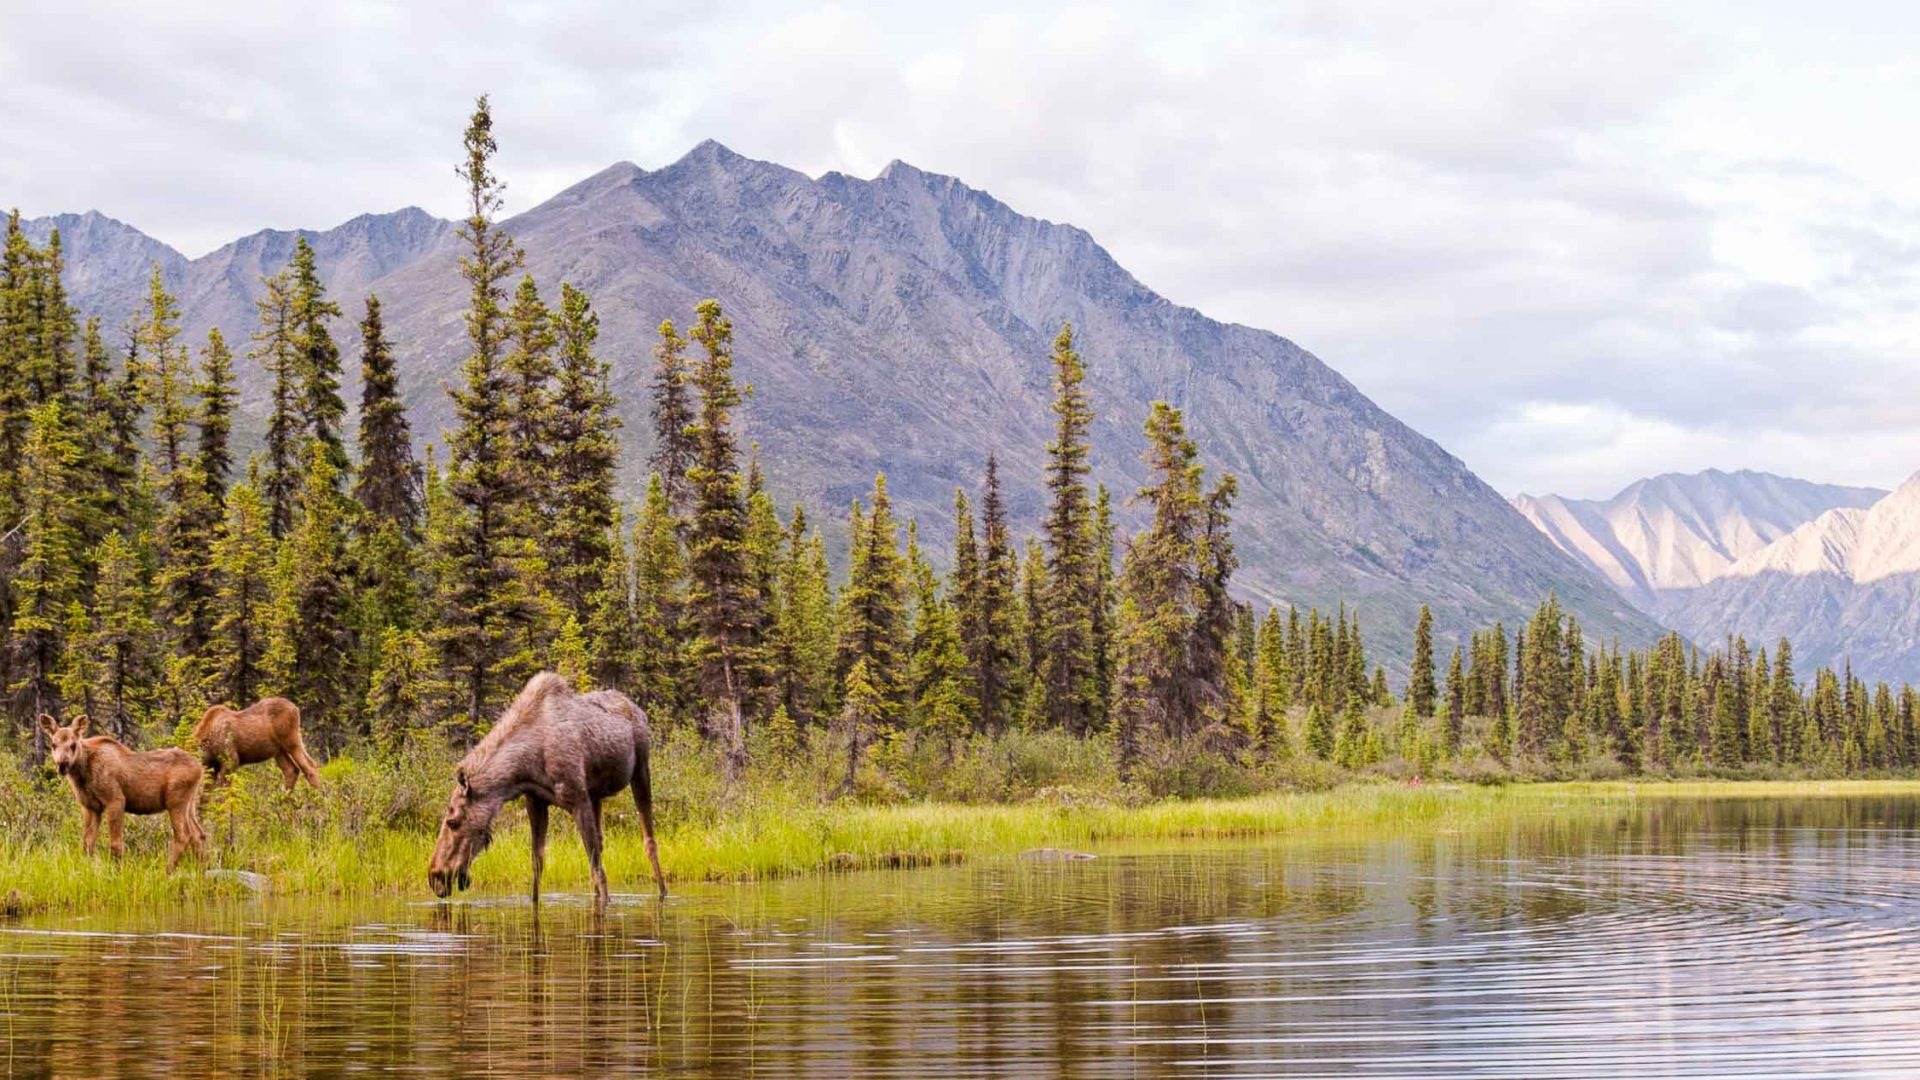 Moose grazing by Wind River, Northern Yukon.